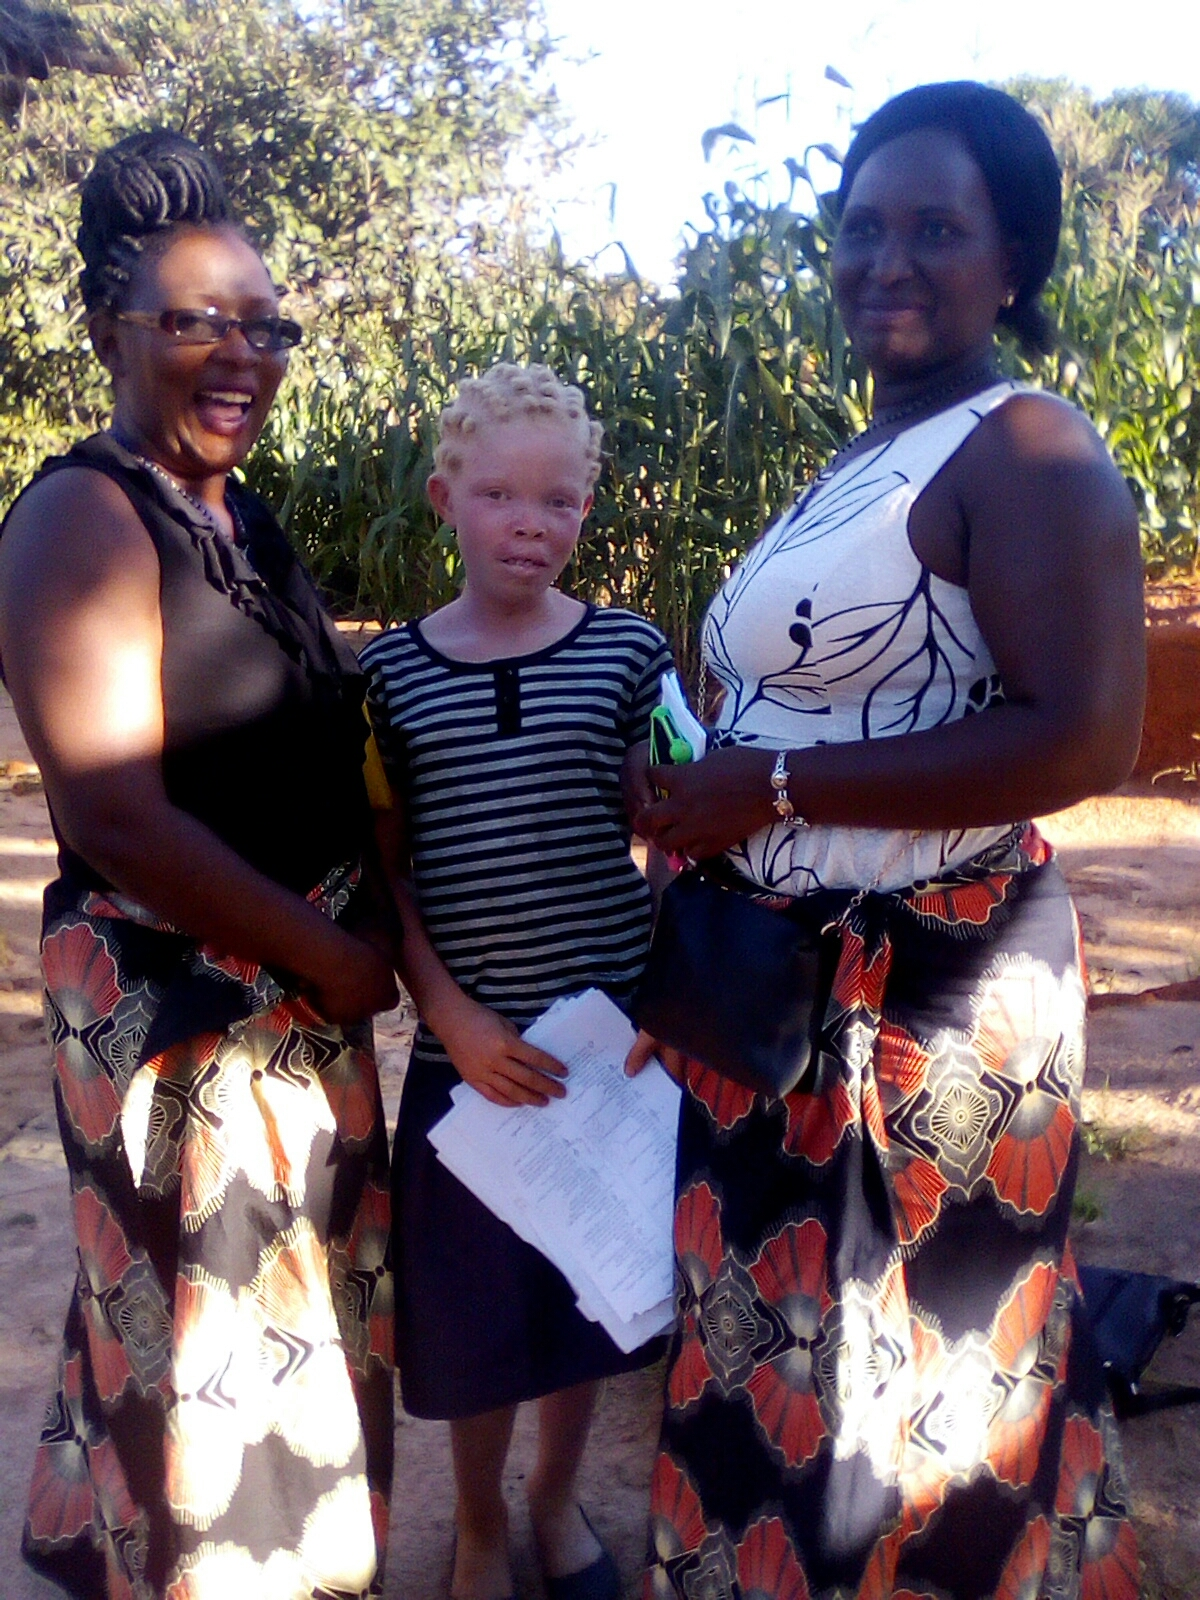 Both  Martha  and  Thoko  are  now  able  to  go  to  the  safe  environment  of  a  boarding  school